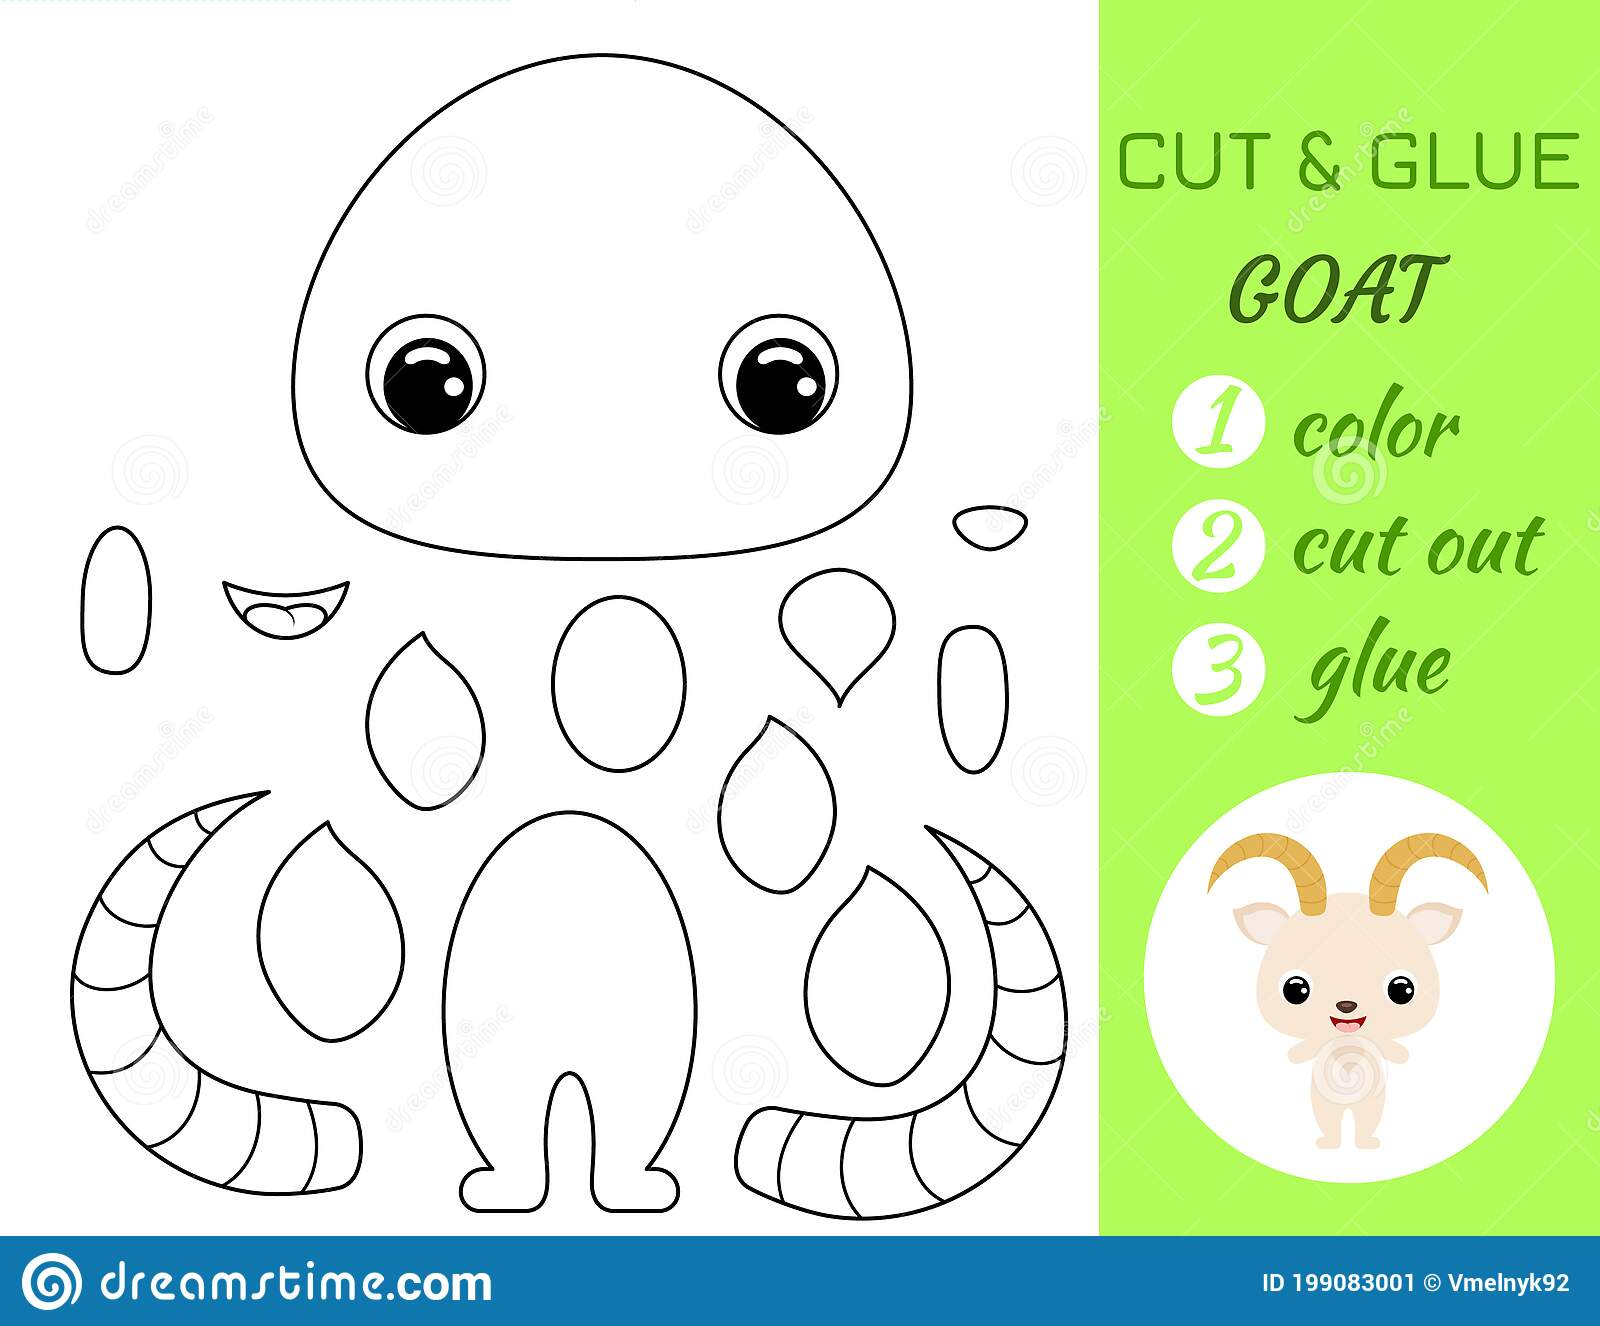 Coloring Book Cut And Glue Baby Goat Educational Paper